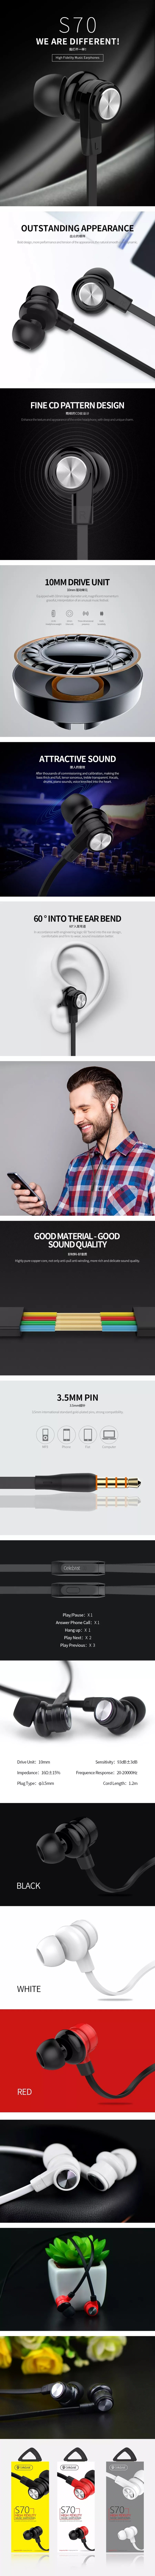 New products S70 Noise Cancelling Earphone Hot Selling Mobile Earphone Good Price Earphone Noise Cancelling